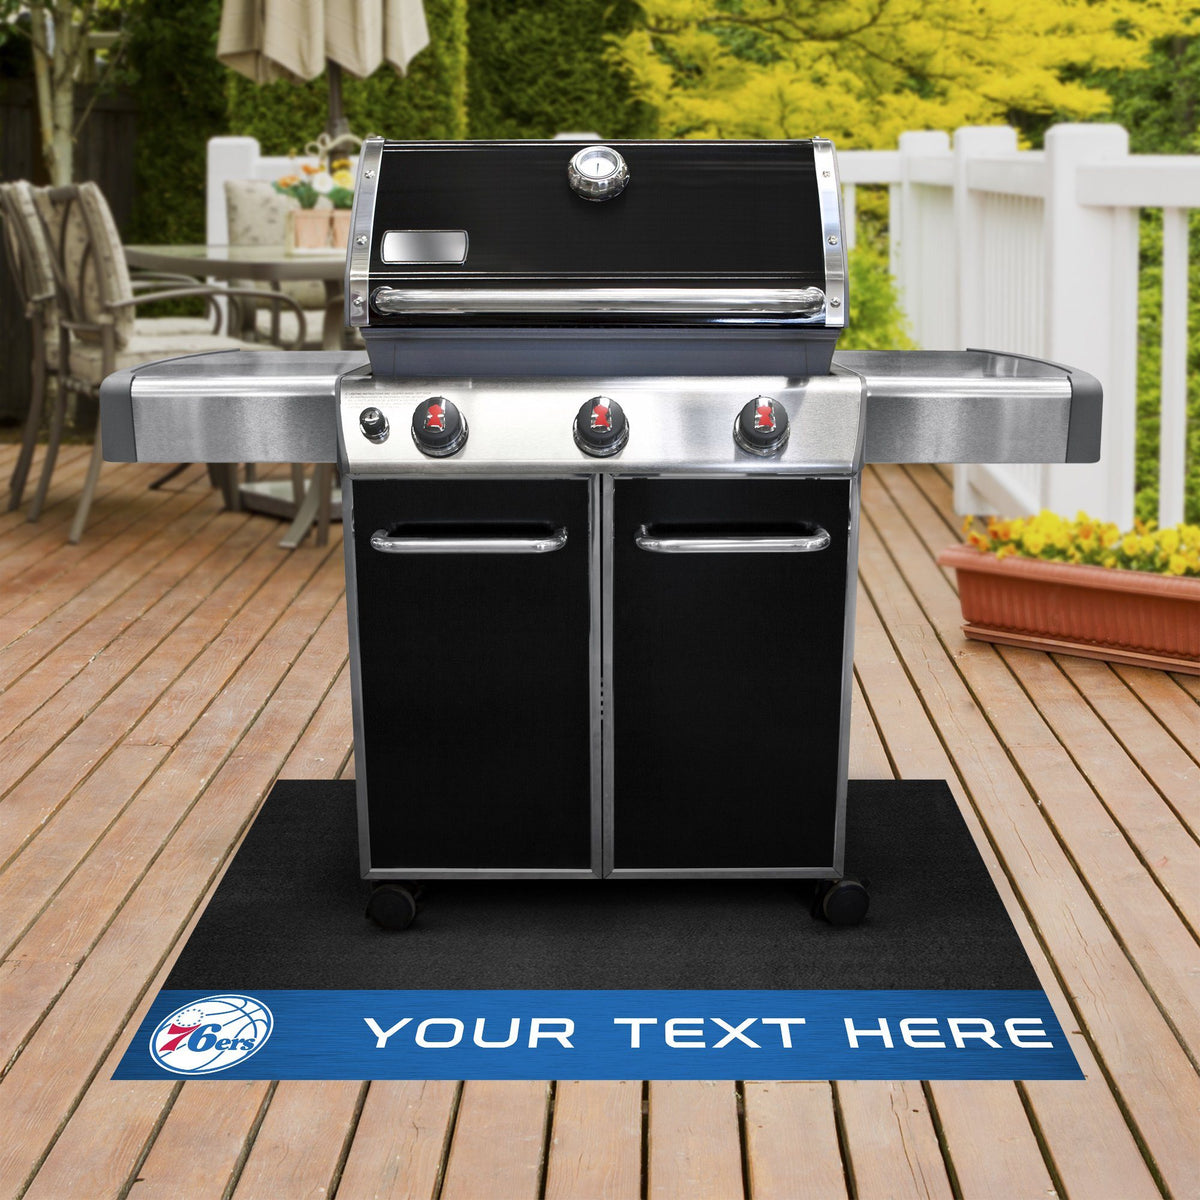 NBA Personalized Grill Mat Personalized Grill Mat Fan Mats Philadelphia 76ers